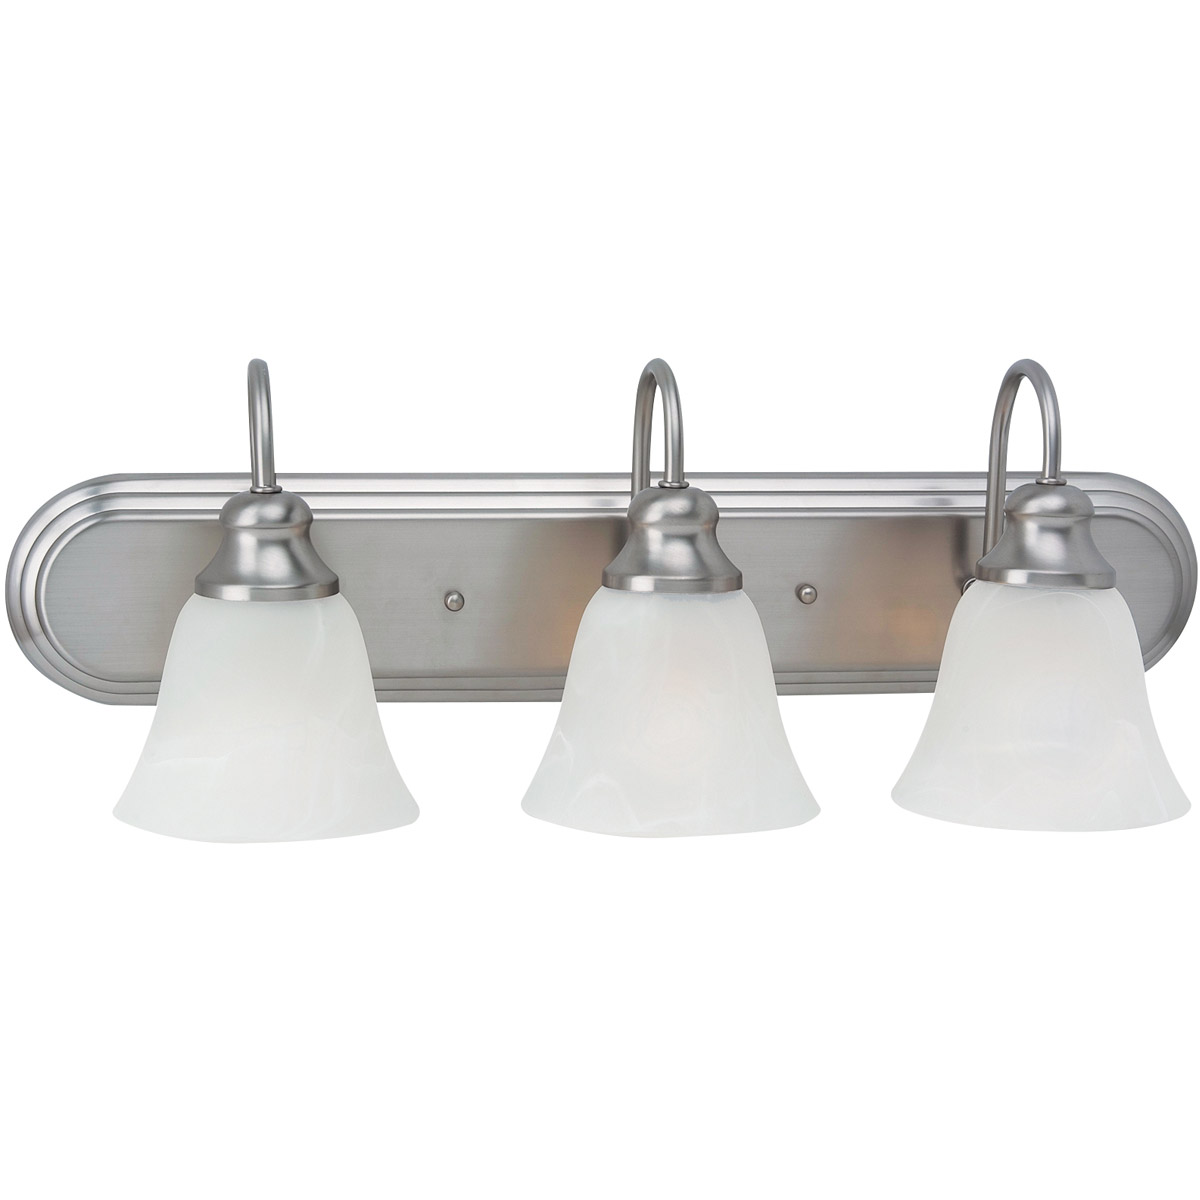 Sea Gull Lighting Windgate 3 Light Bath Vanity in Brushed Nickel 44941-962 photo